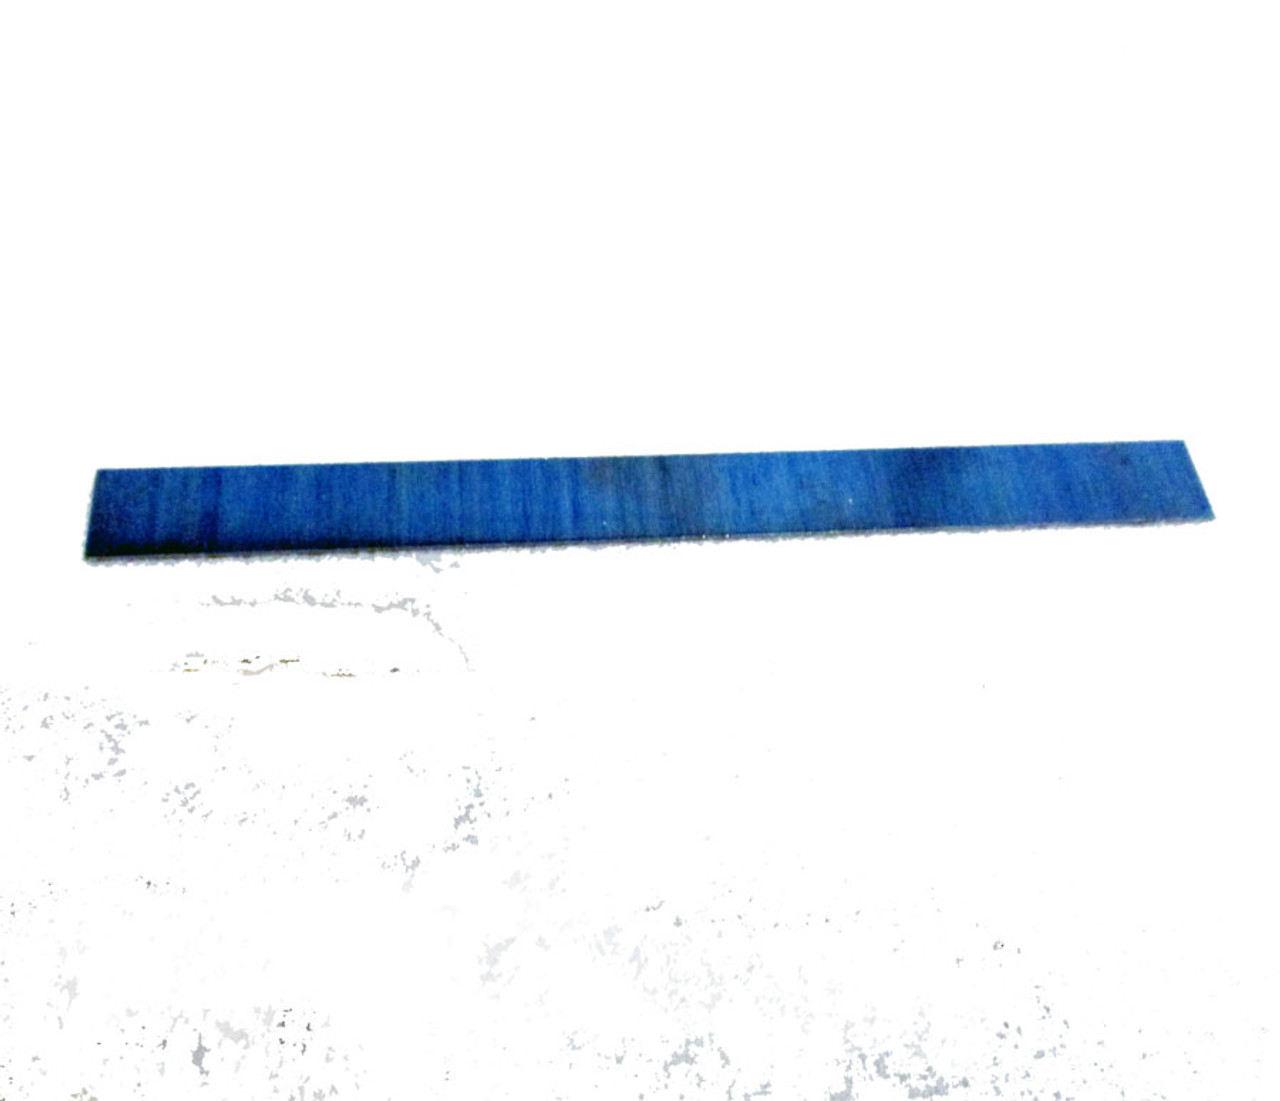 "We found some 10-95 steel blanks for you. You get 10 pieces in a pack.  0.015 by 6"" by 1/2 inch.  Good deal!"